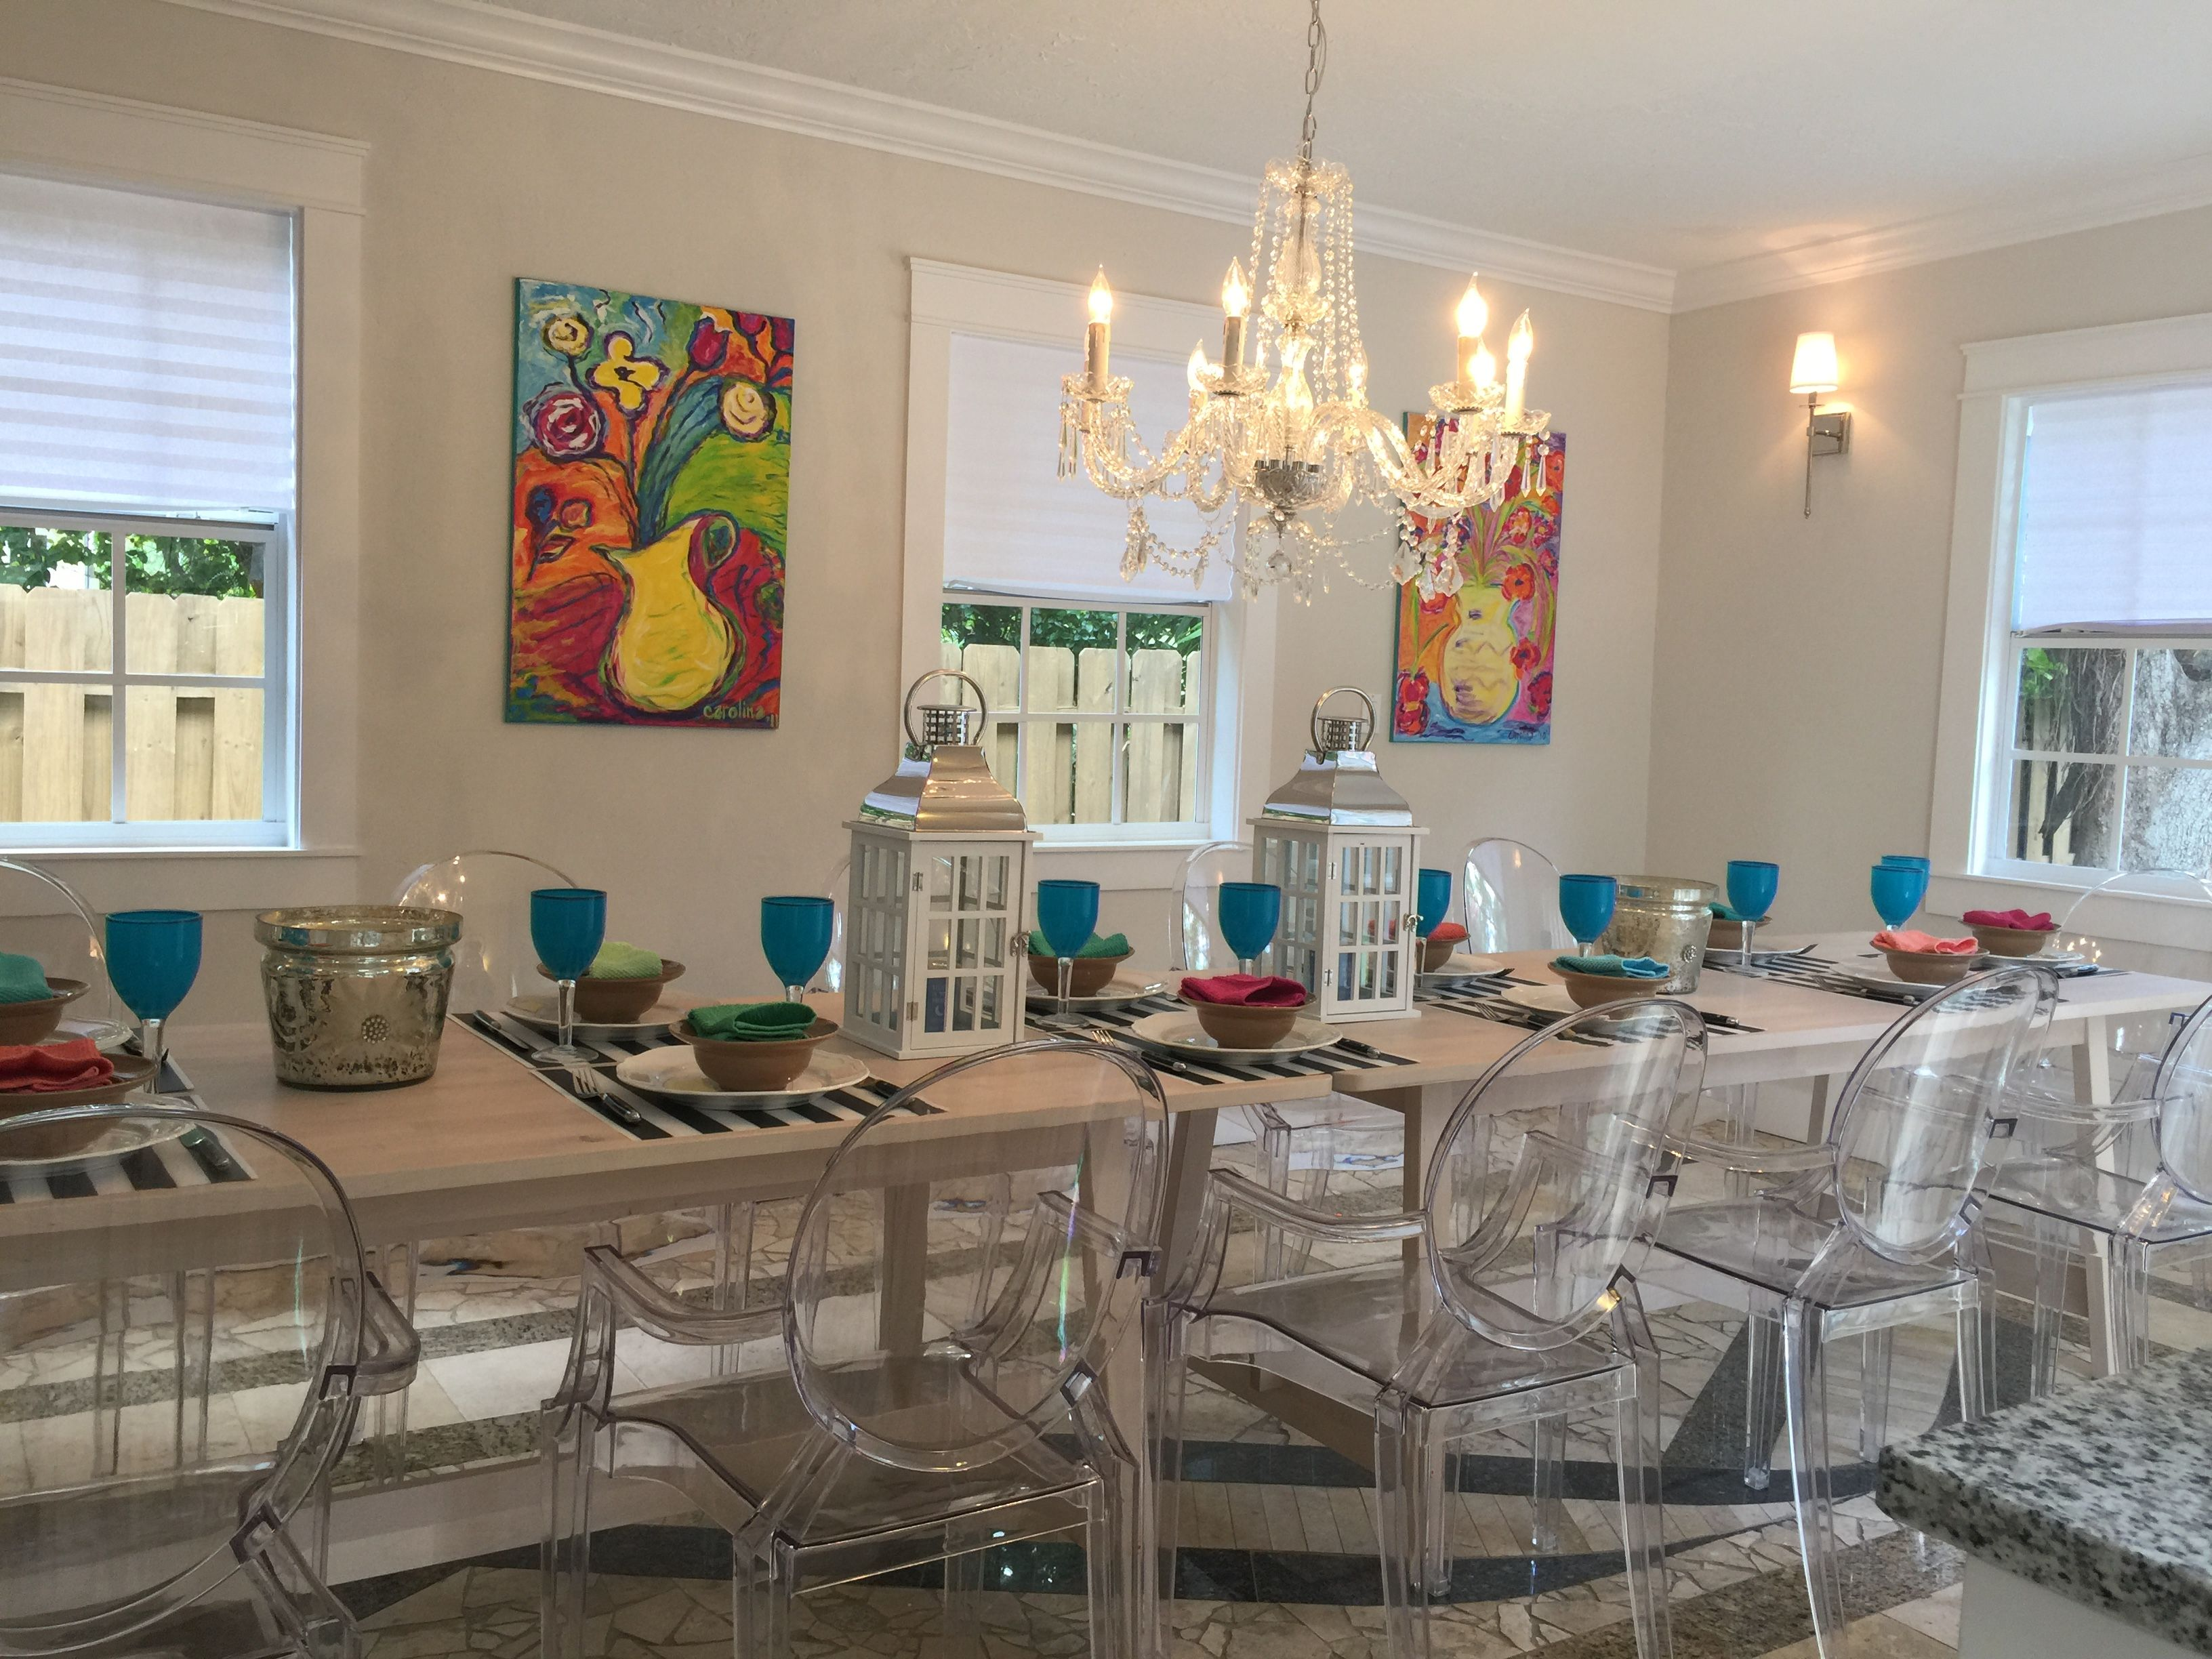 The dining room of our west palm beach home i deliberately chose the dining room of our west palm beach home i deliberately chose clear lucite ghost chairs to mimick the luminosity of the crystal chandelier arubaitofo Choice Image